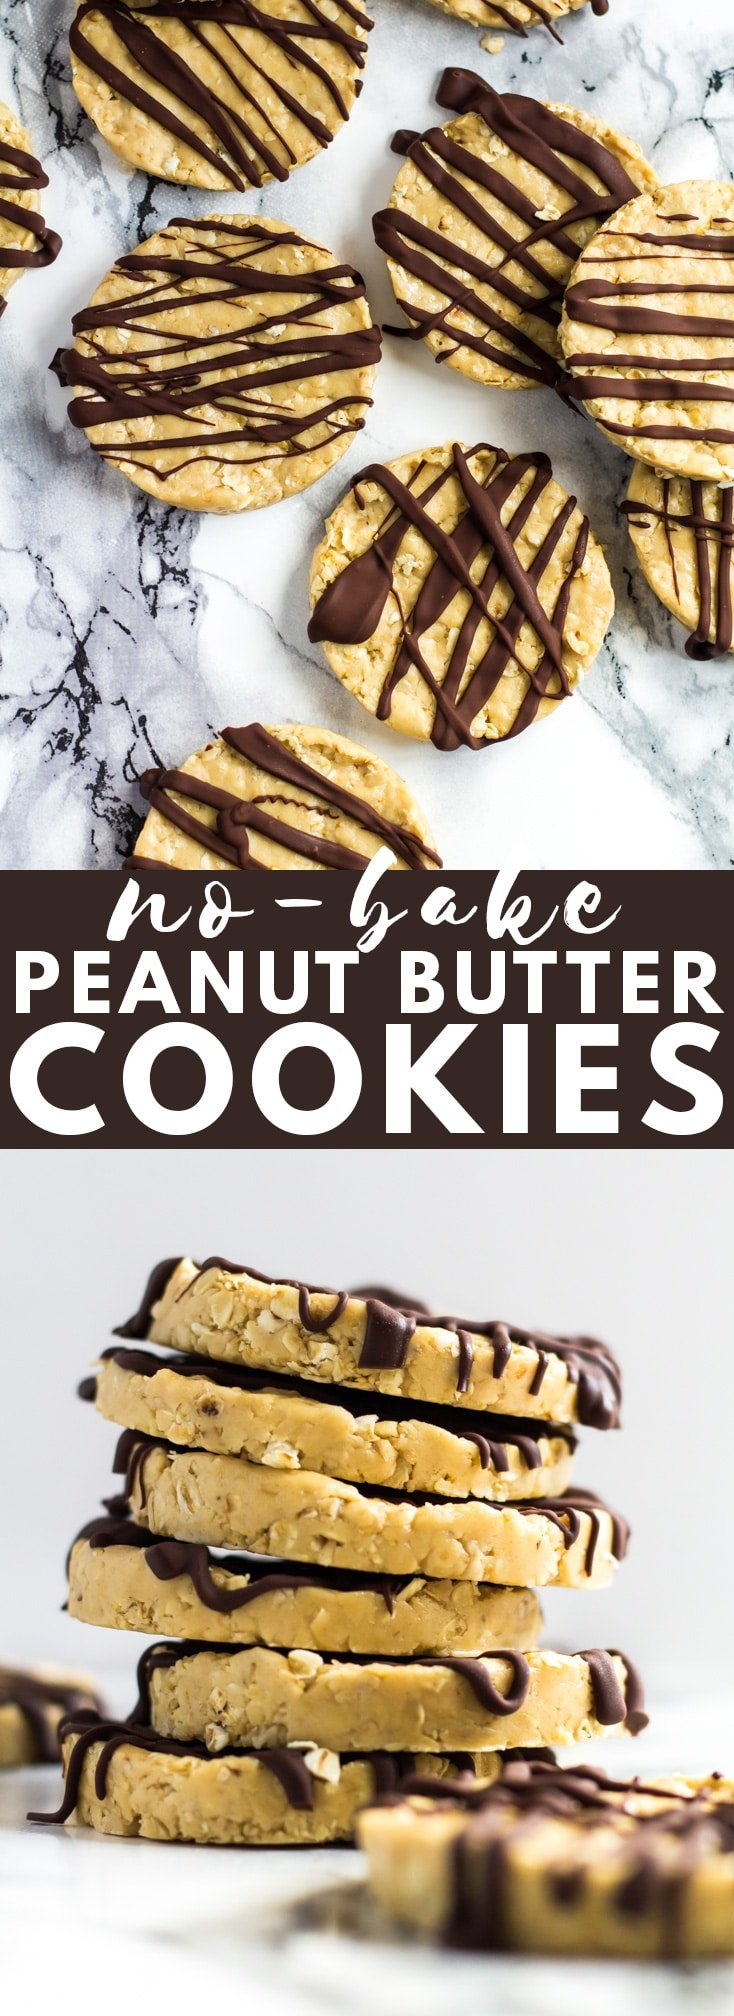 No-Bake Peanut Butter Cookies - These cookies are soft, creamy, loaded with peanut butter flavour, no-bake, and only require 4 simple ingredients to make! #nobake #peanutbutter #cookies #cookierecipes